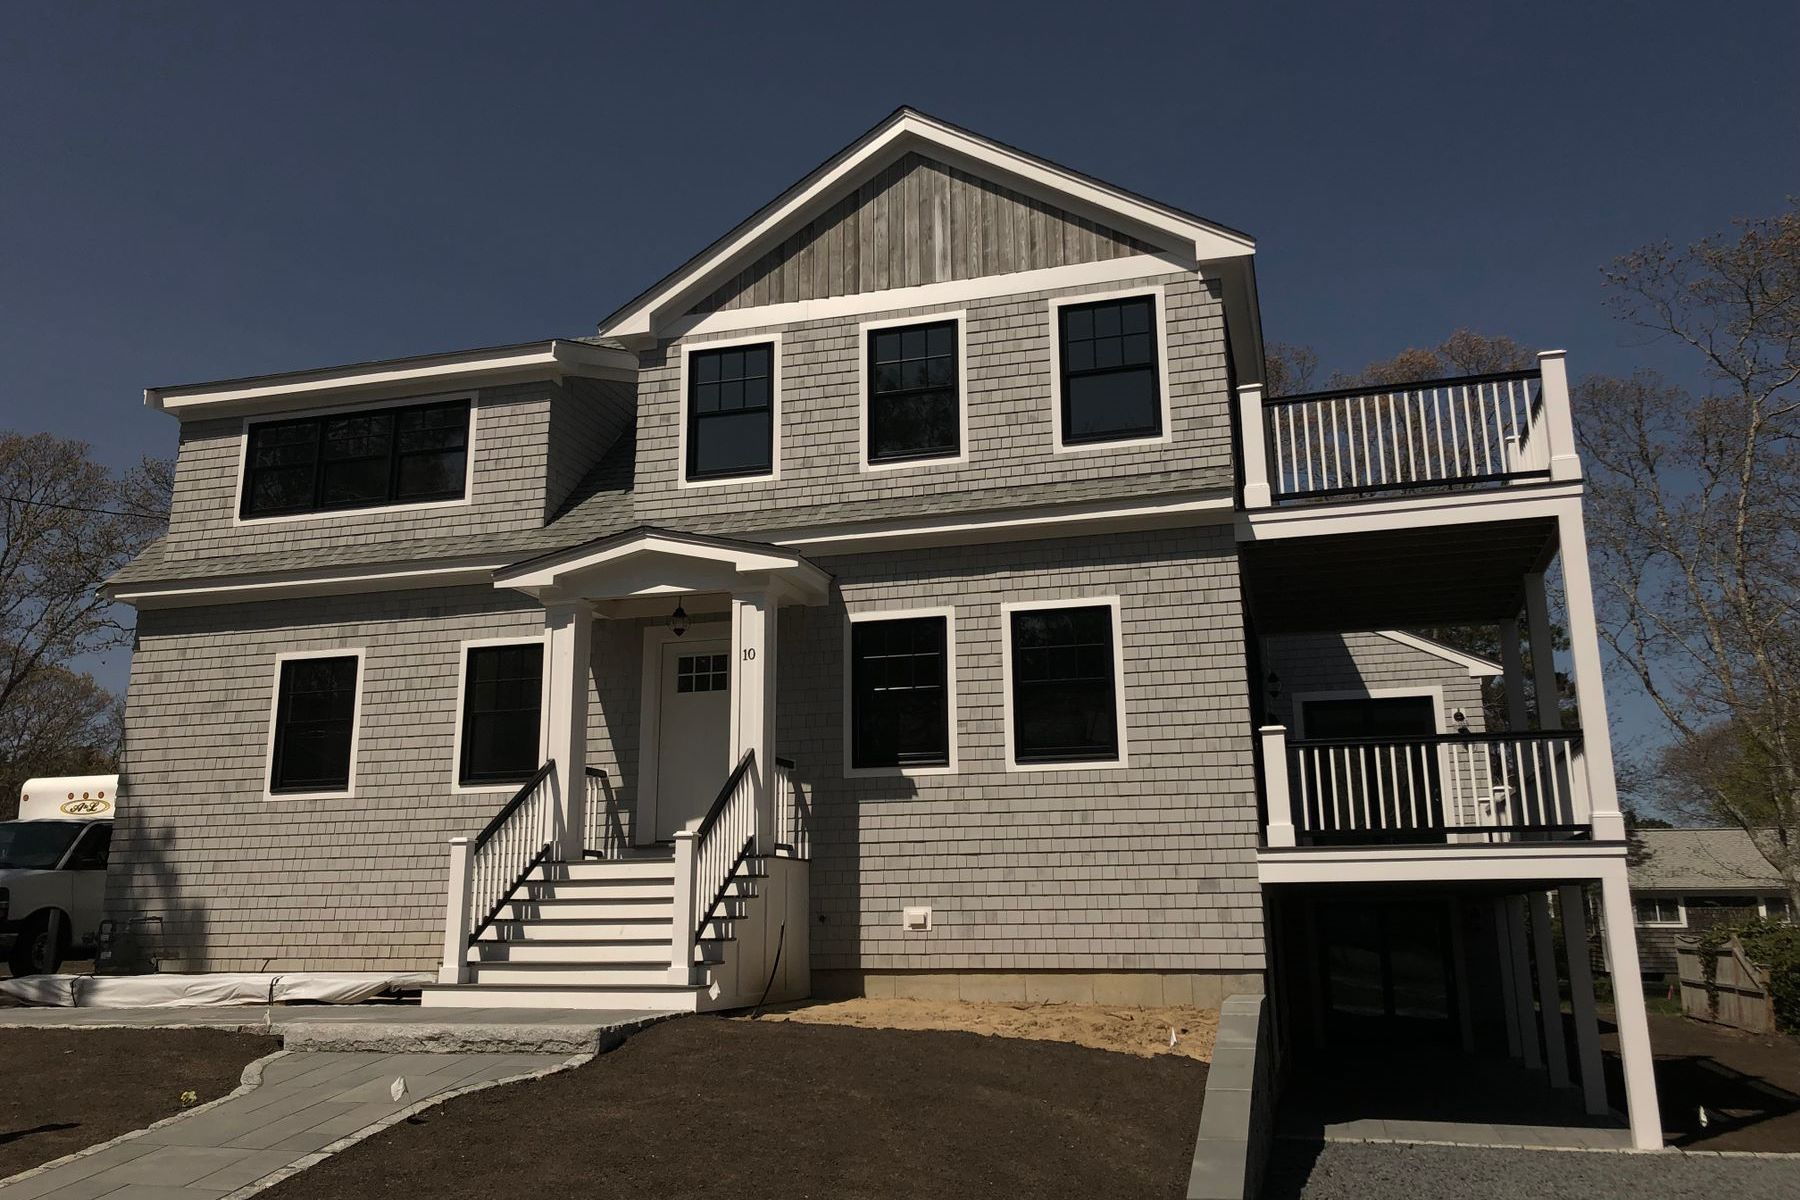 Single Family Home for Active at Pond and Ocean Views in Popponessett 10 Menemsha Road Mashpee, Massachusetts 02649 United States